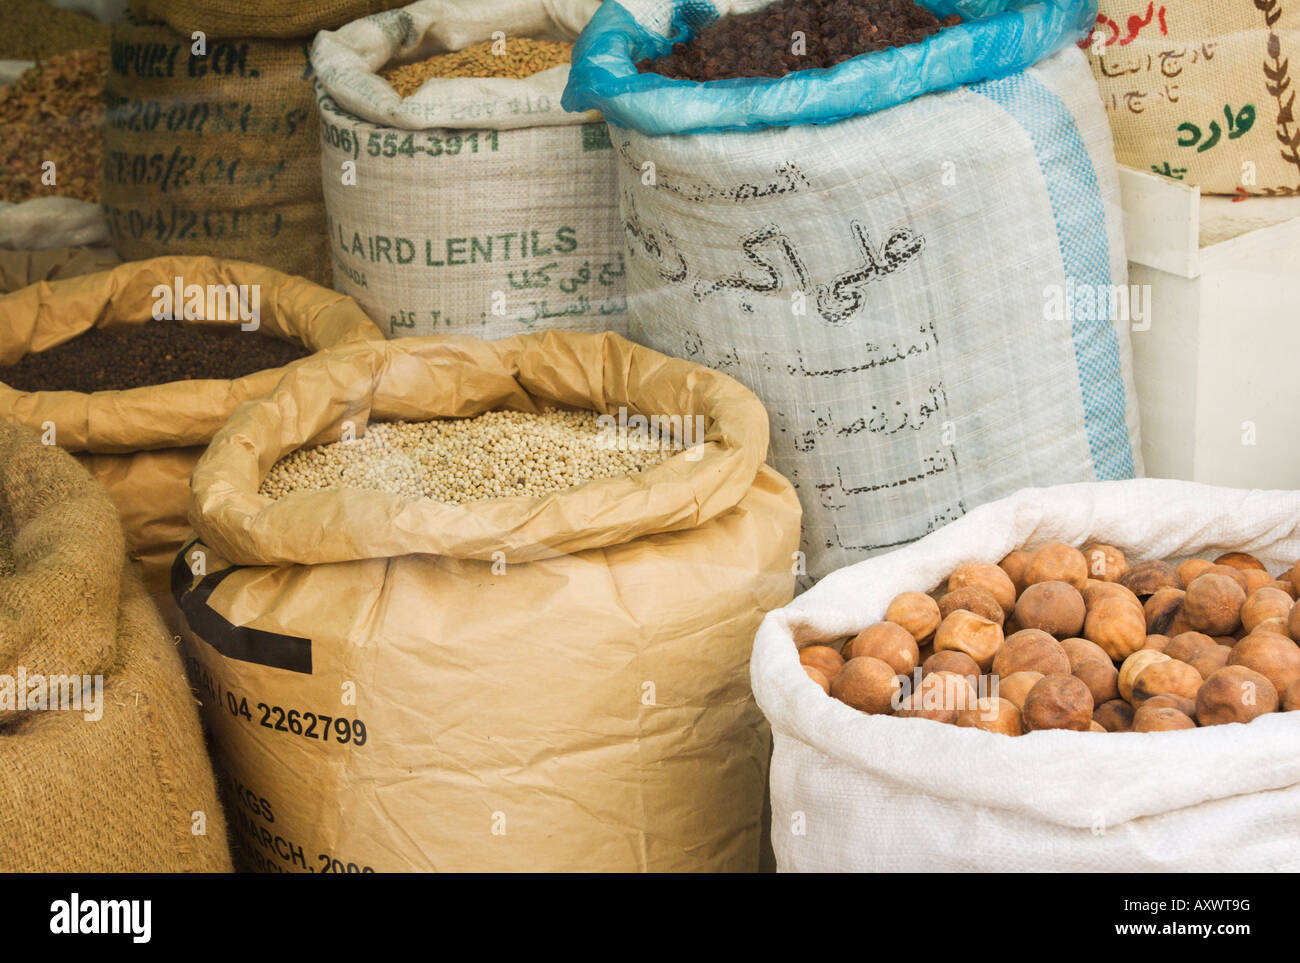 Sacks of nuts and lentils in the Spice Souk, Deira, Dubai, United Arab Emirates, Middle East - Stock Image